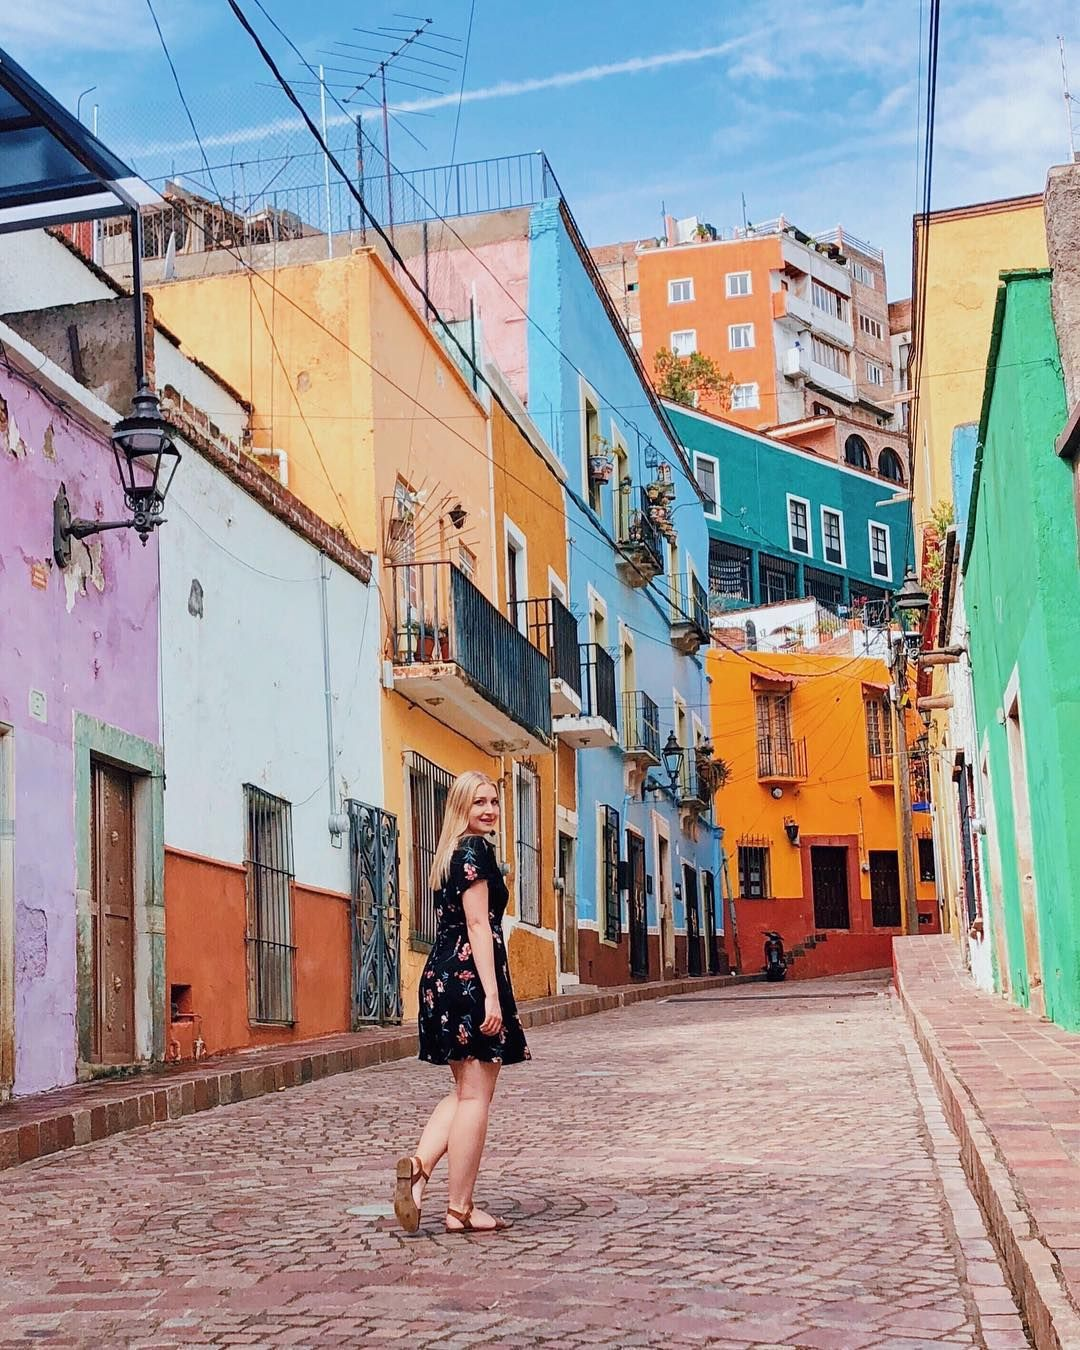 Best Things To Do In Guanajuato City, Mexico - Live Dream ... |Guanajuato Historical Places